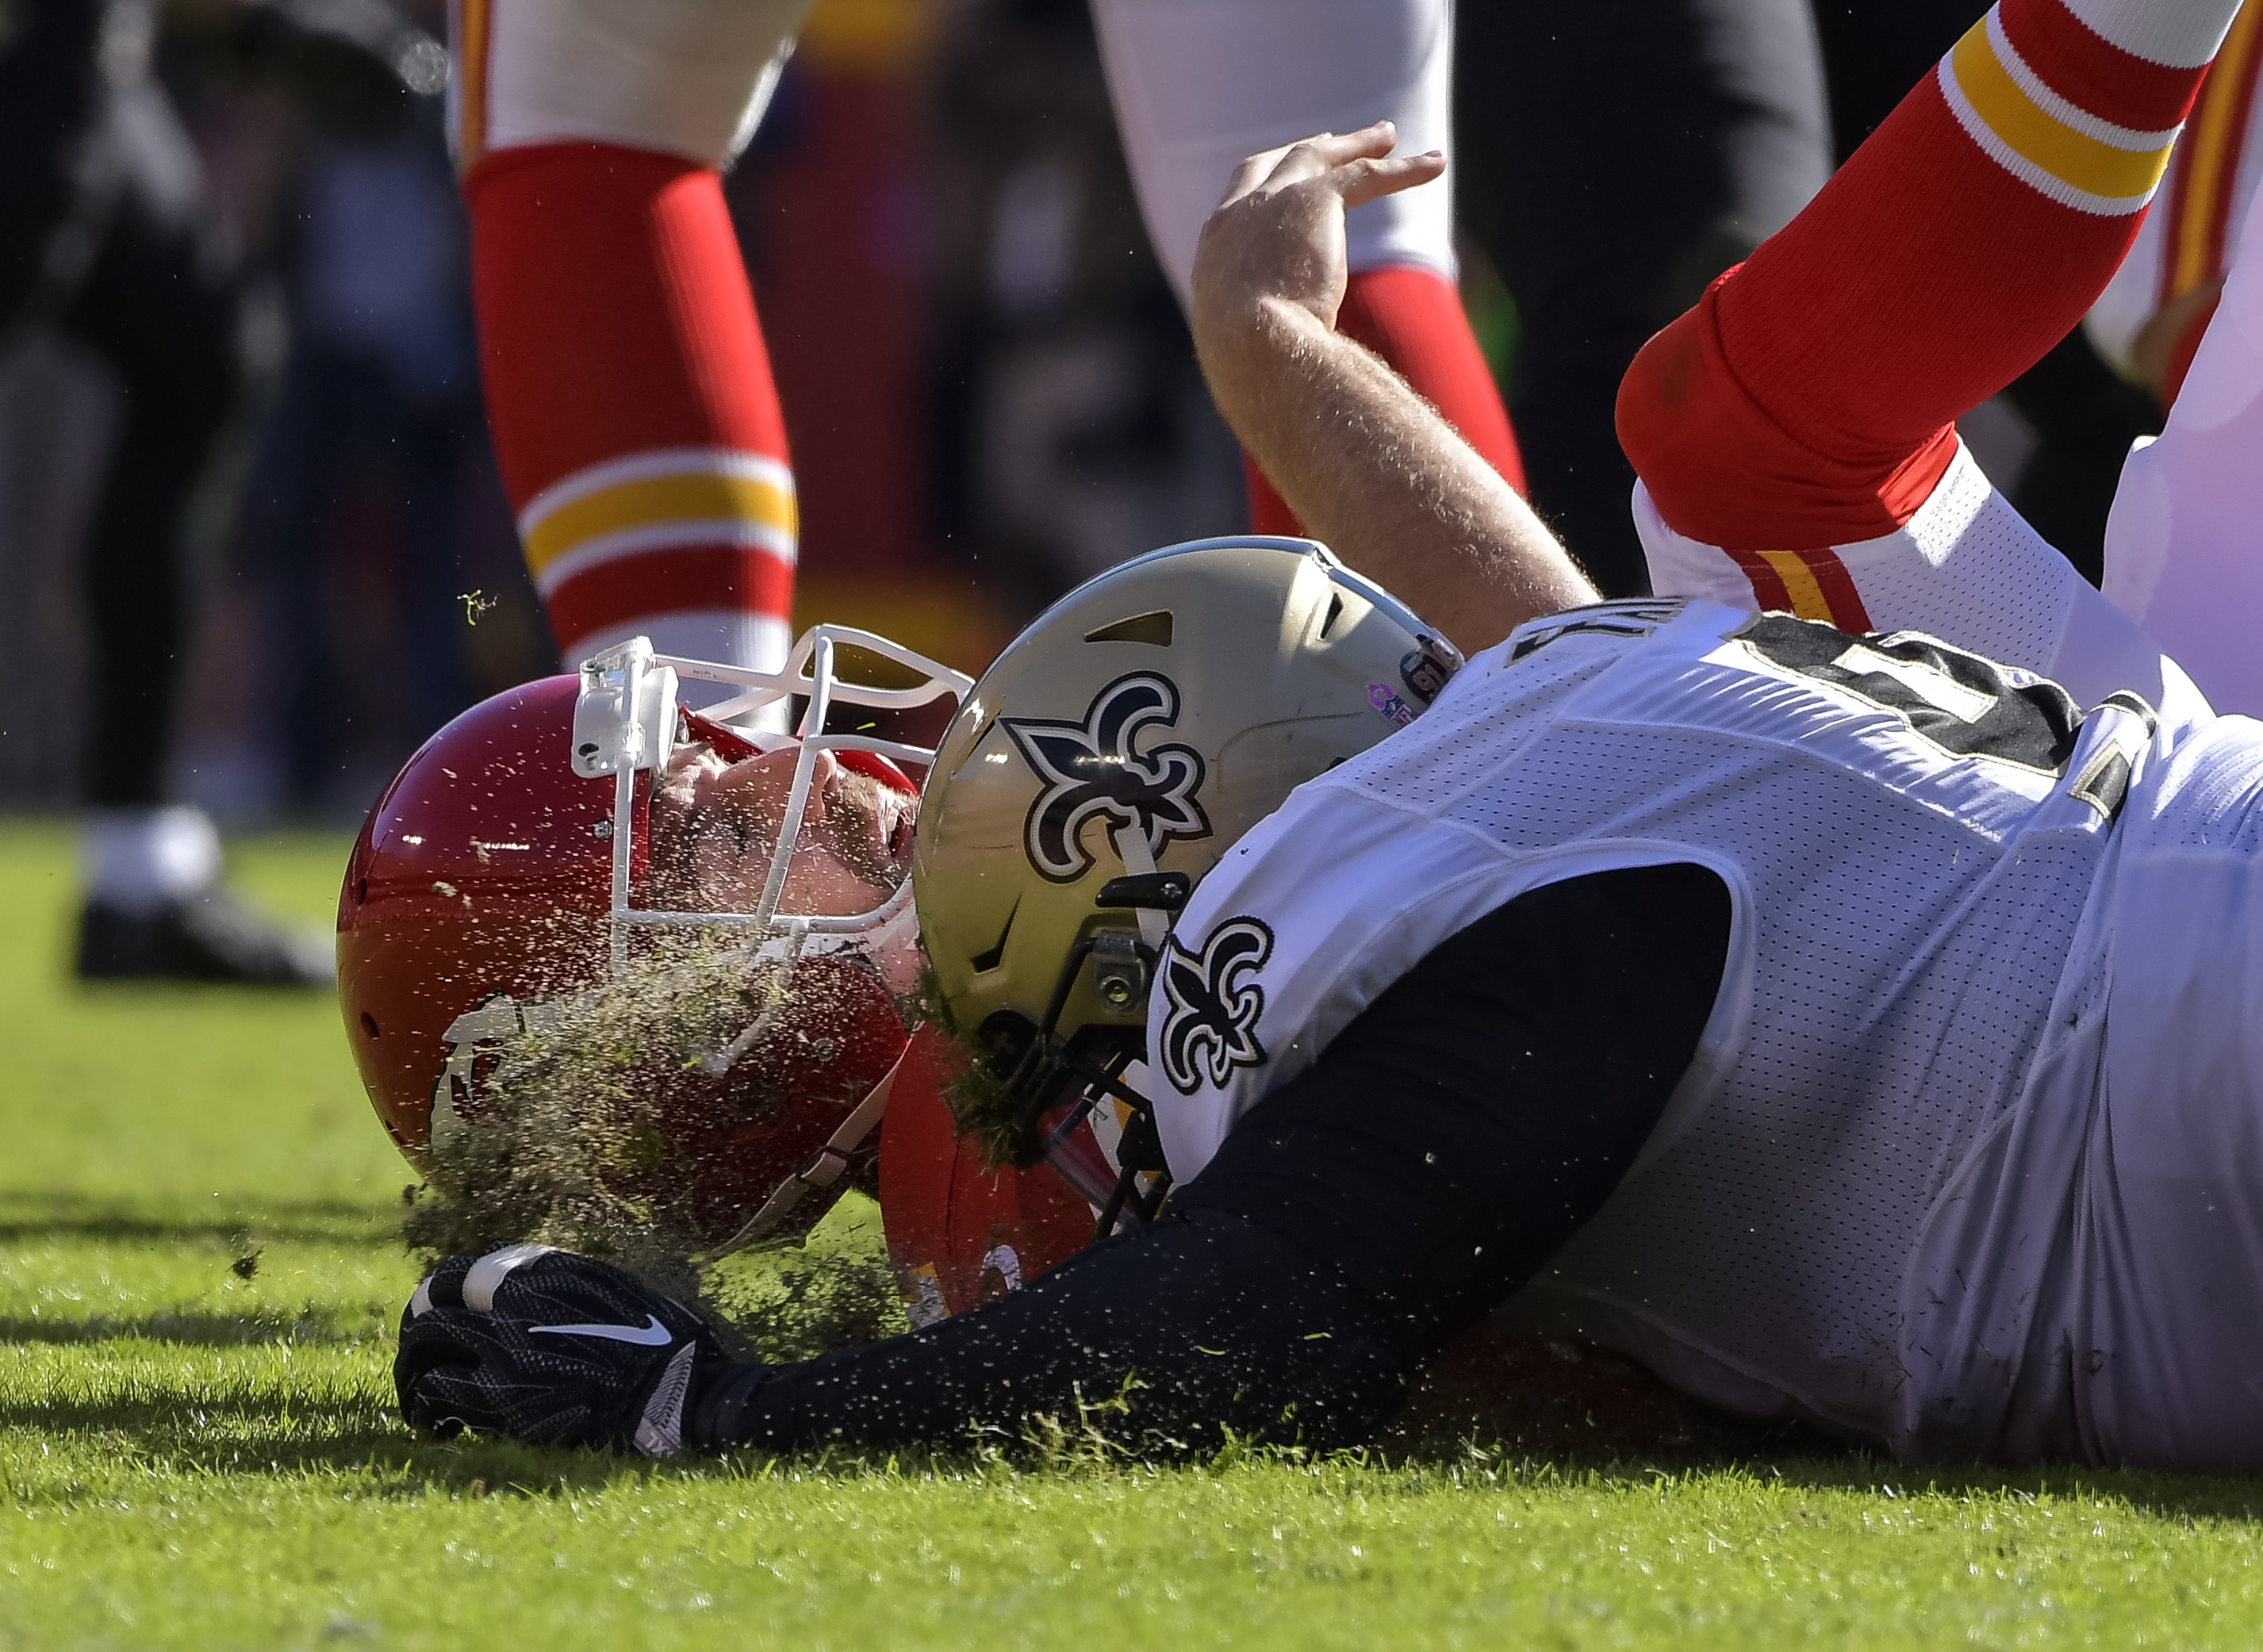 FILE - In this Oct. 23, 2016, file photo, Kansas City Chiefs quarterback Alex Smith (11) is knocked to the ground after throwing a pass, by New Orleans Saints defensive tackle Nick Fairley (90) during the second half of an NFL football game in Kansas City